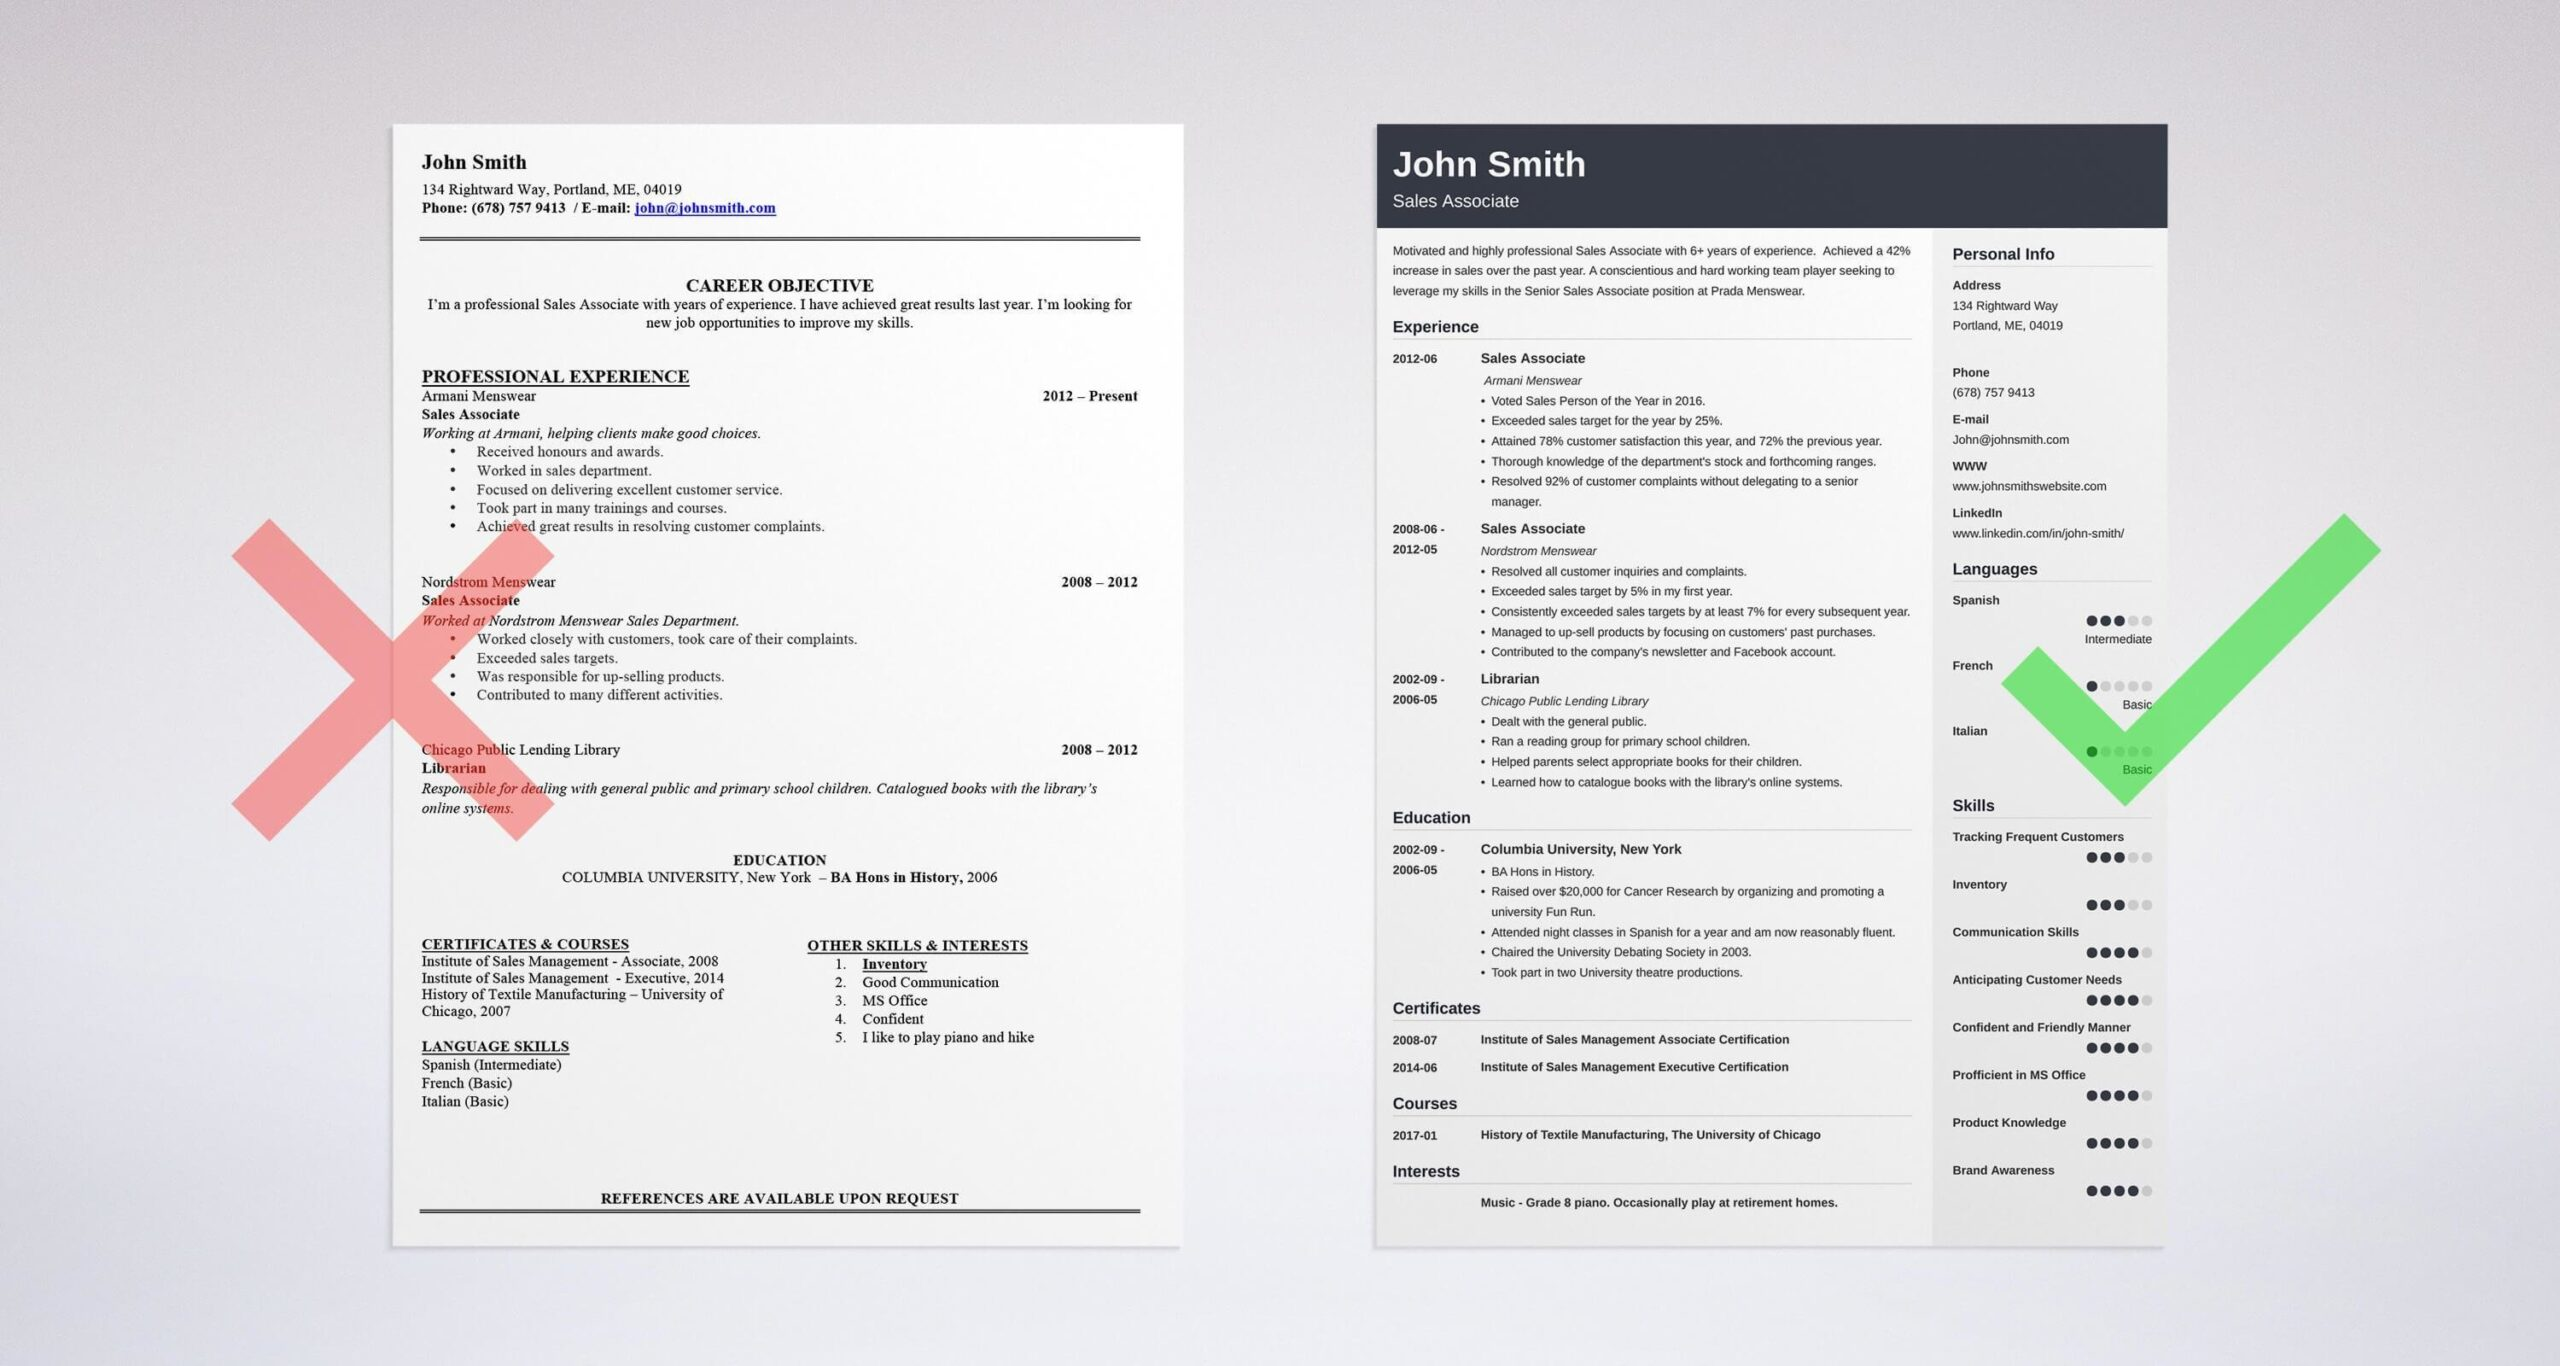 professional resume summary examples statements overview on template cubic nozoom free Resume Resume Overview Examples